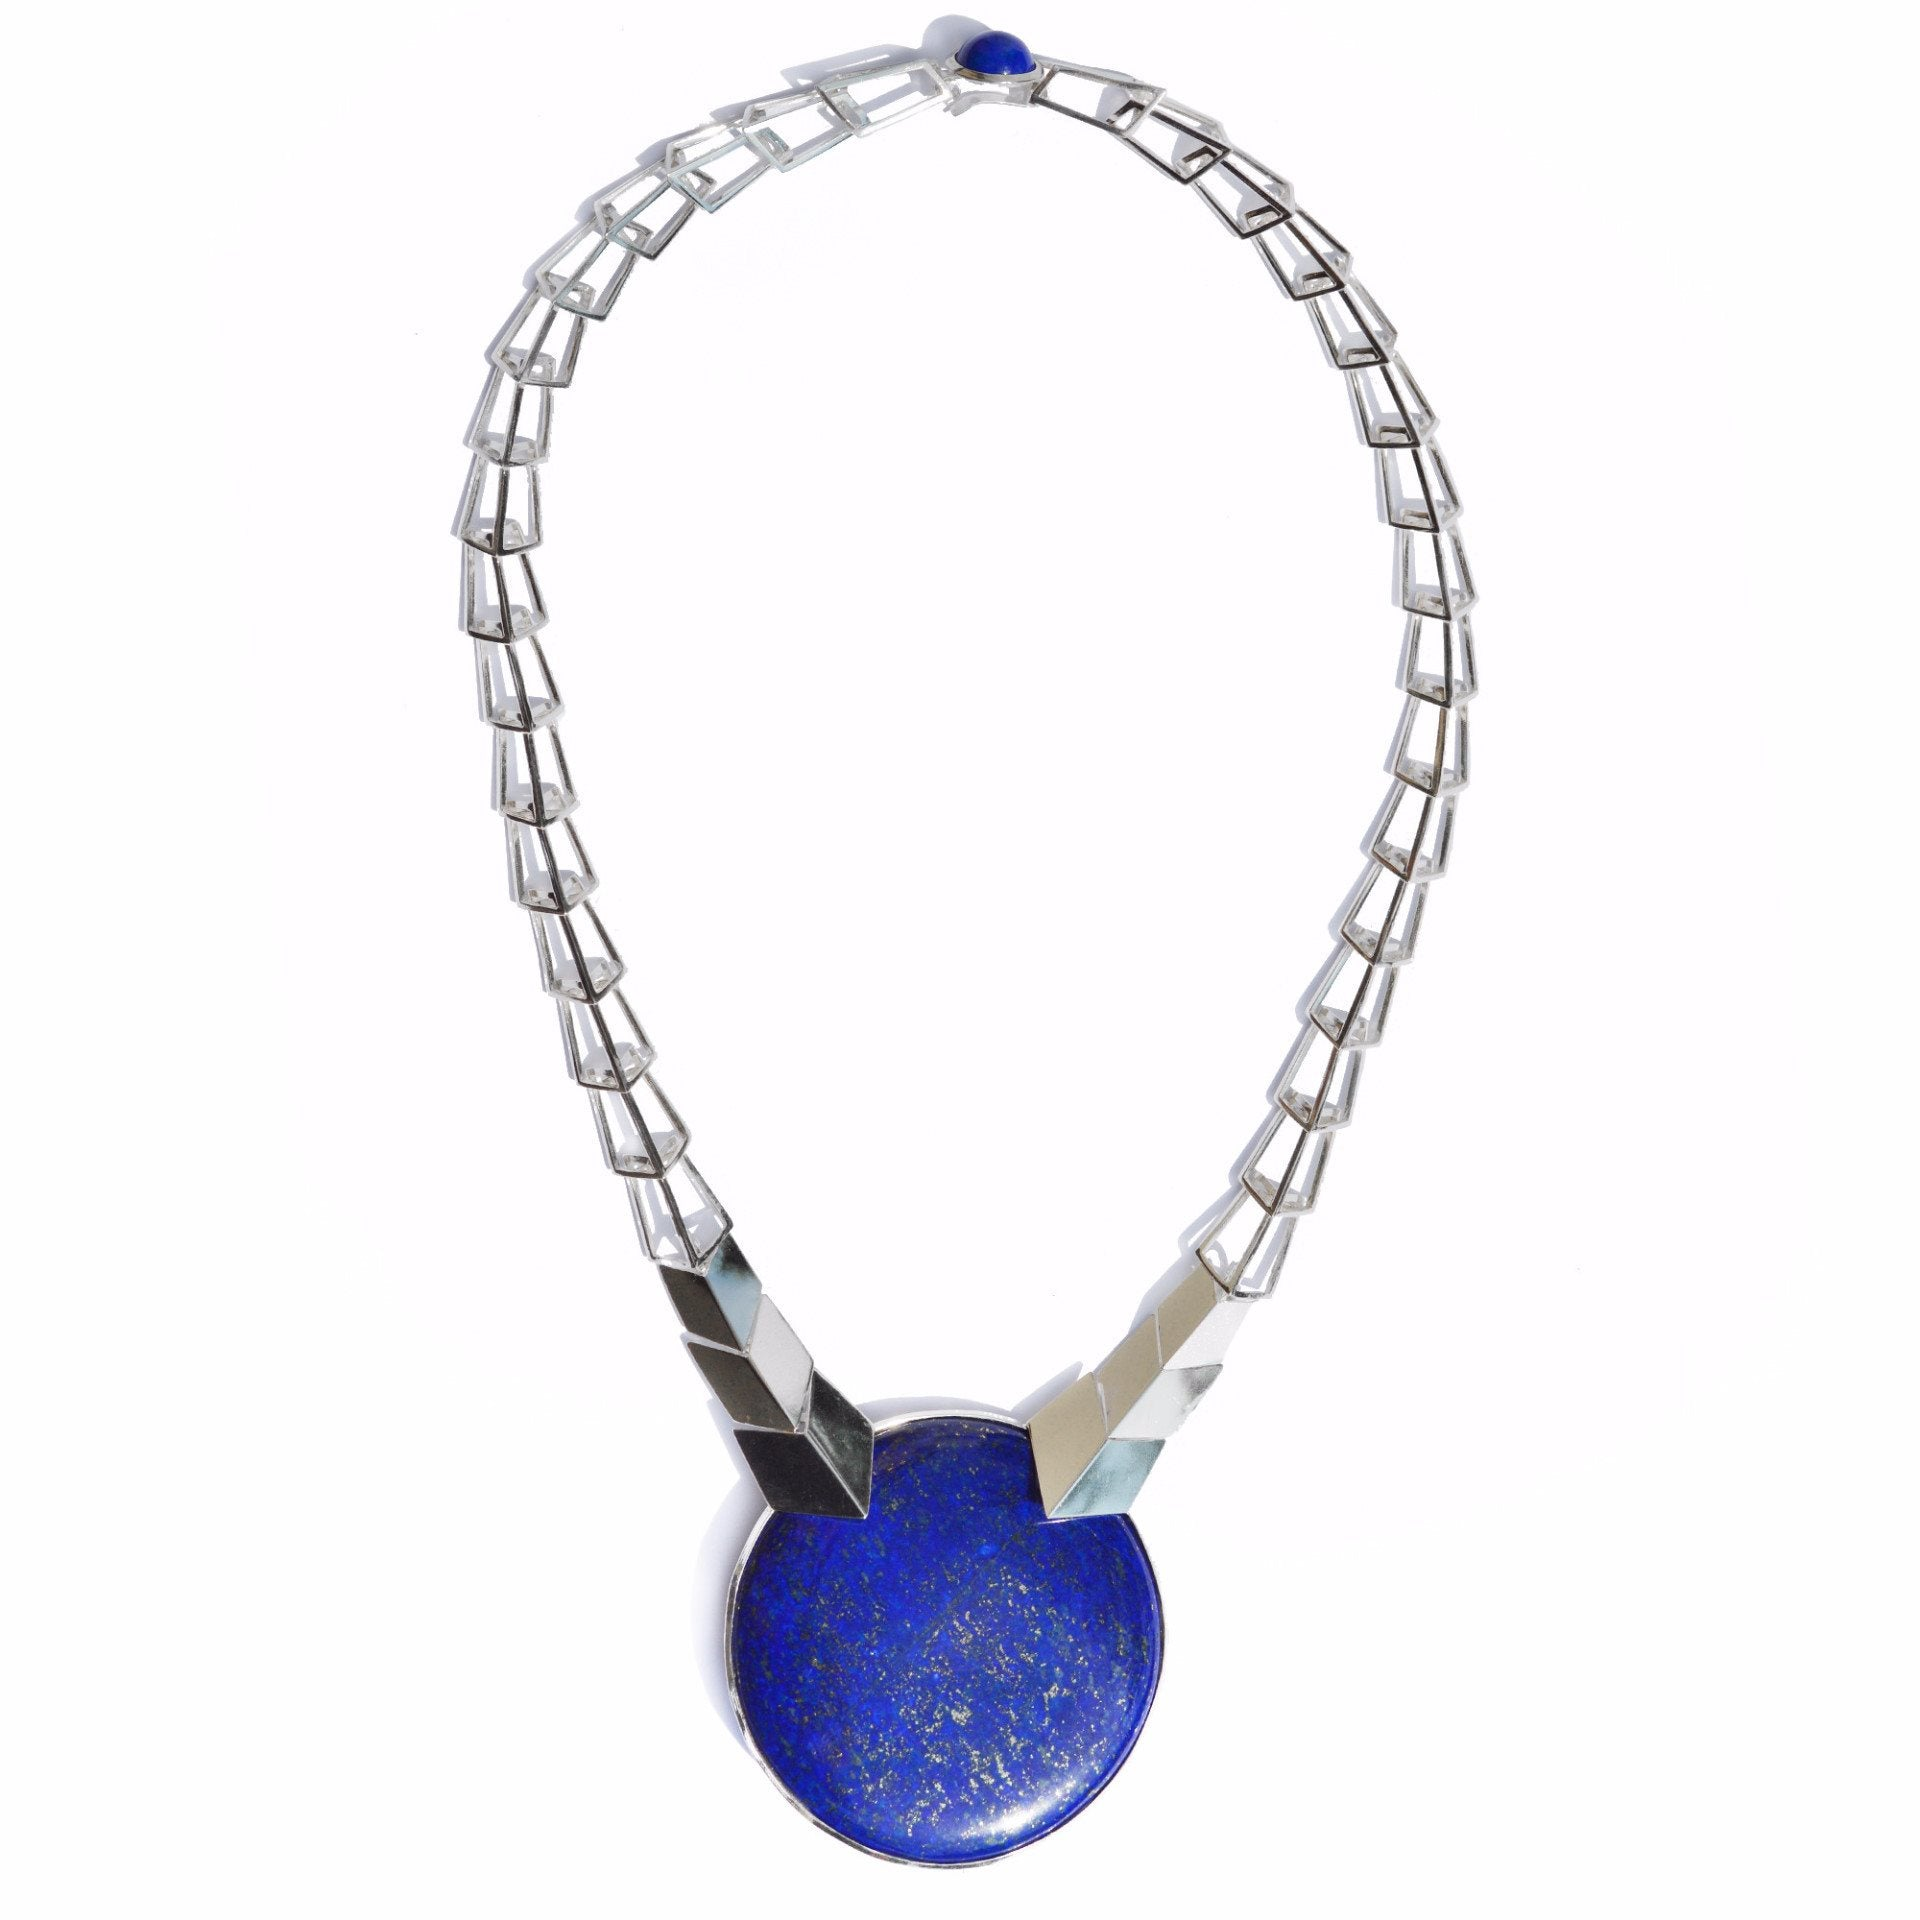 Transforming Necklace with Striking Blue Lapis and Sterling Silver